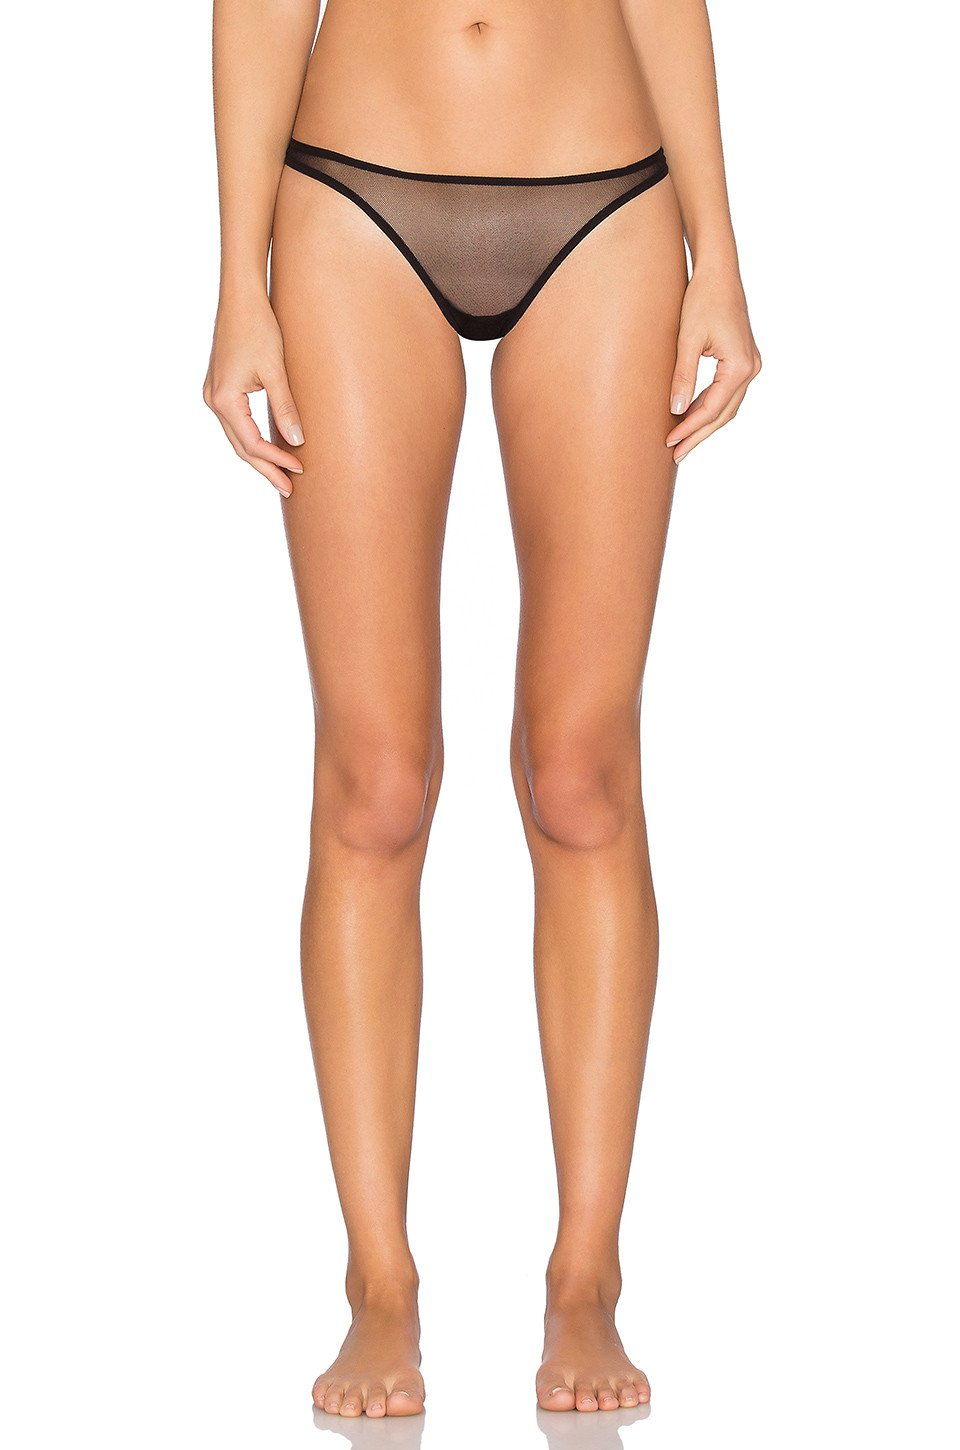 Soire Classic Low Rise Thong - Kustom Label - 1